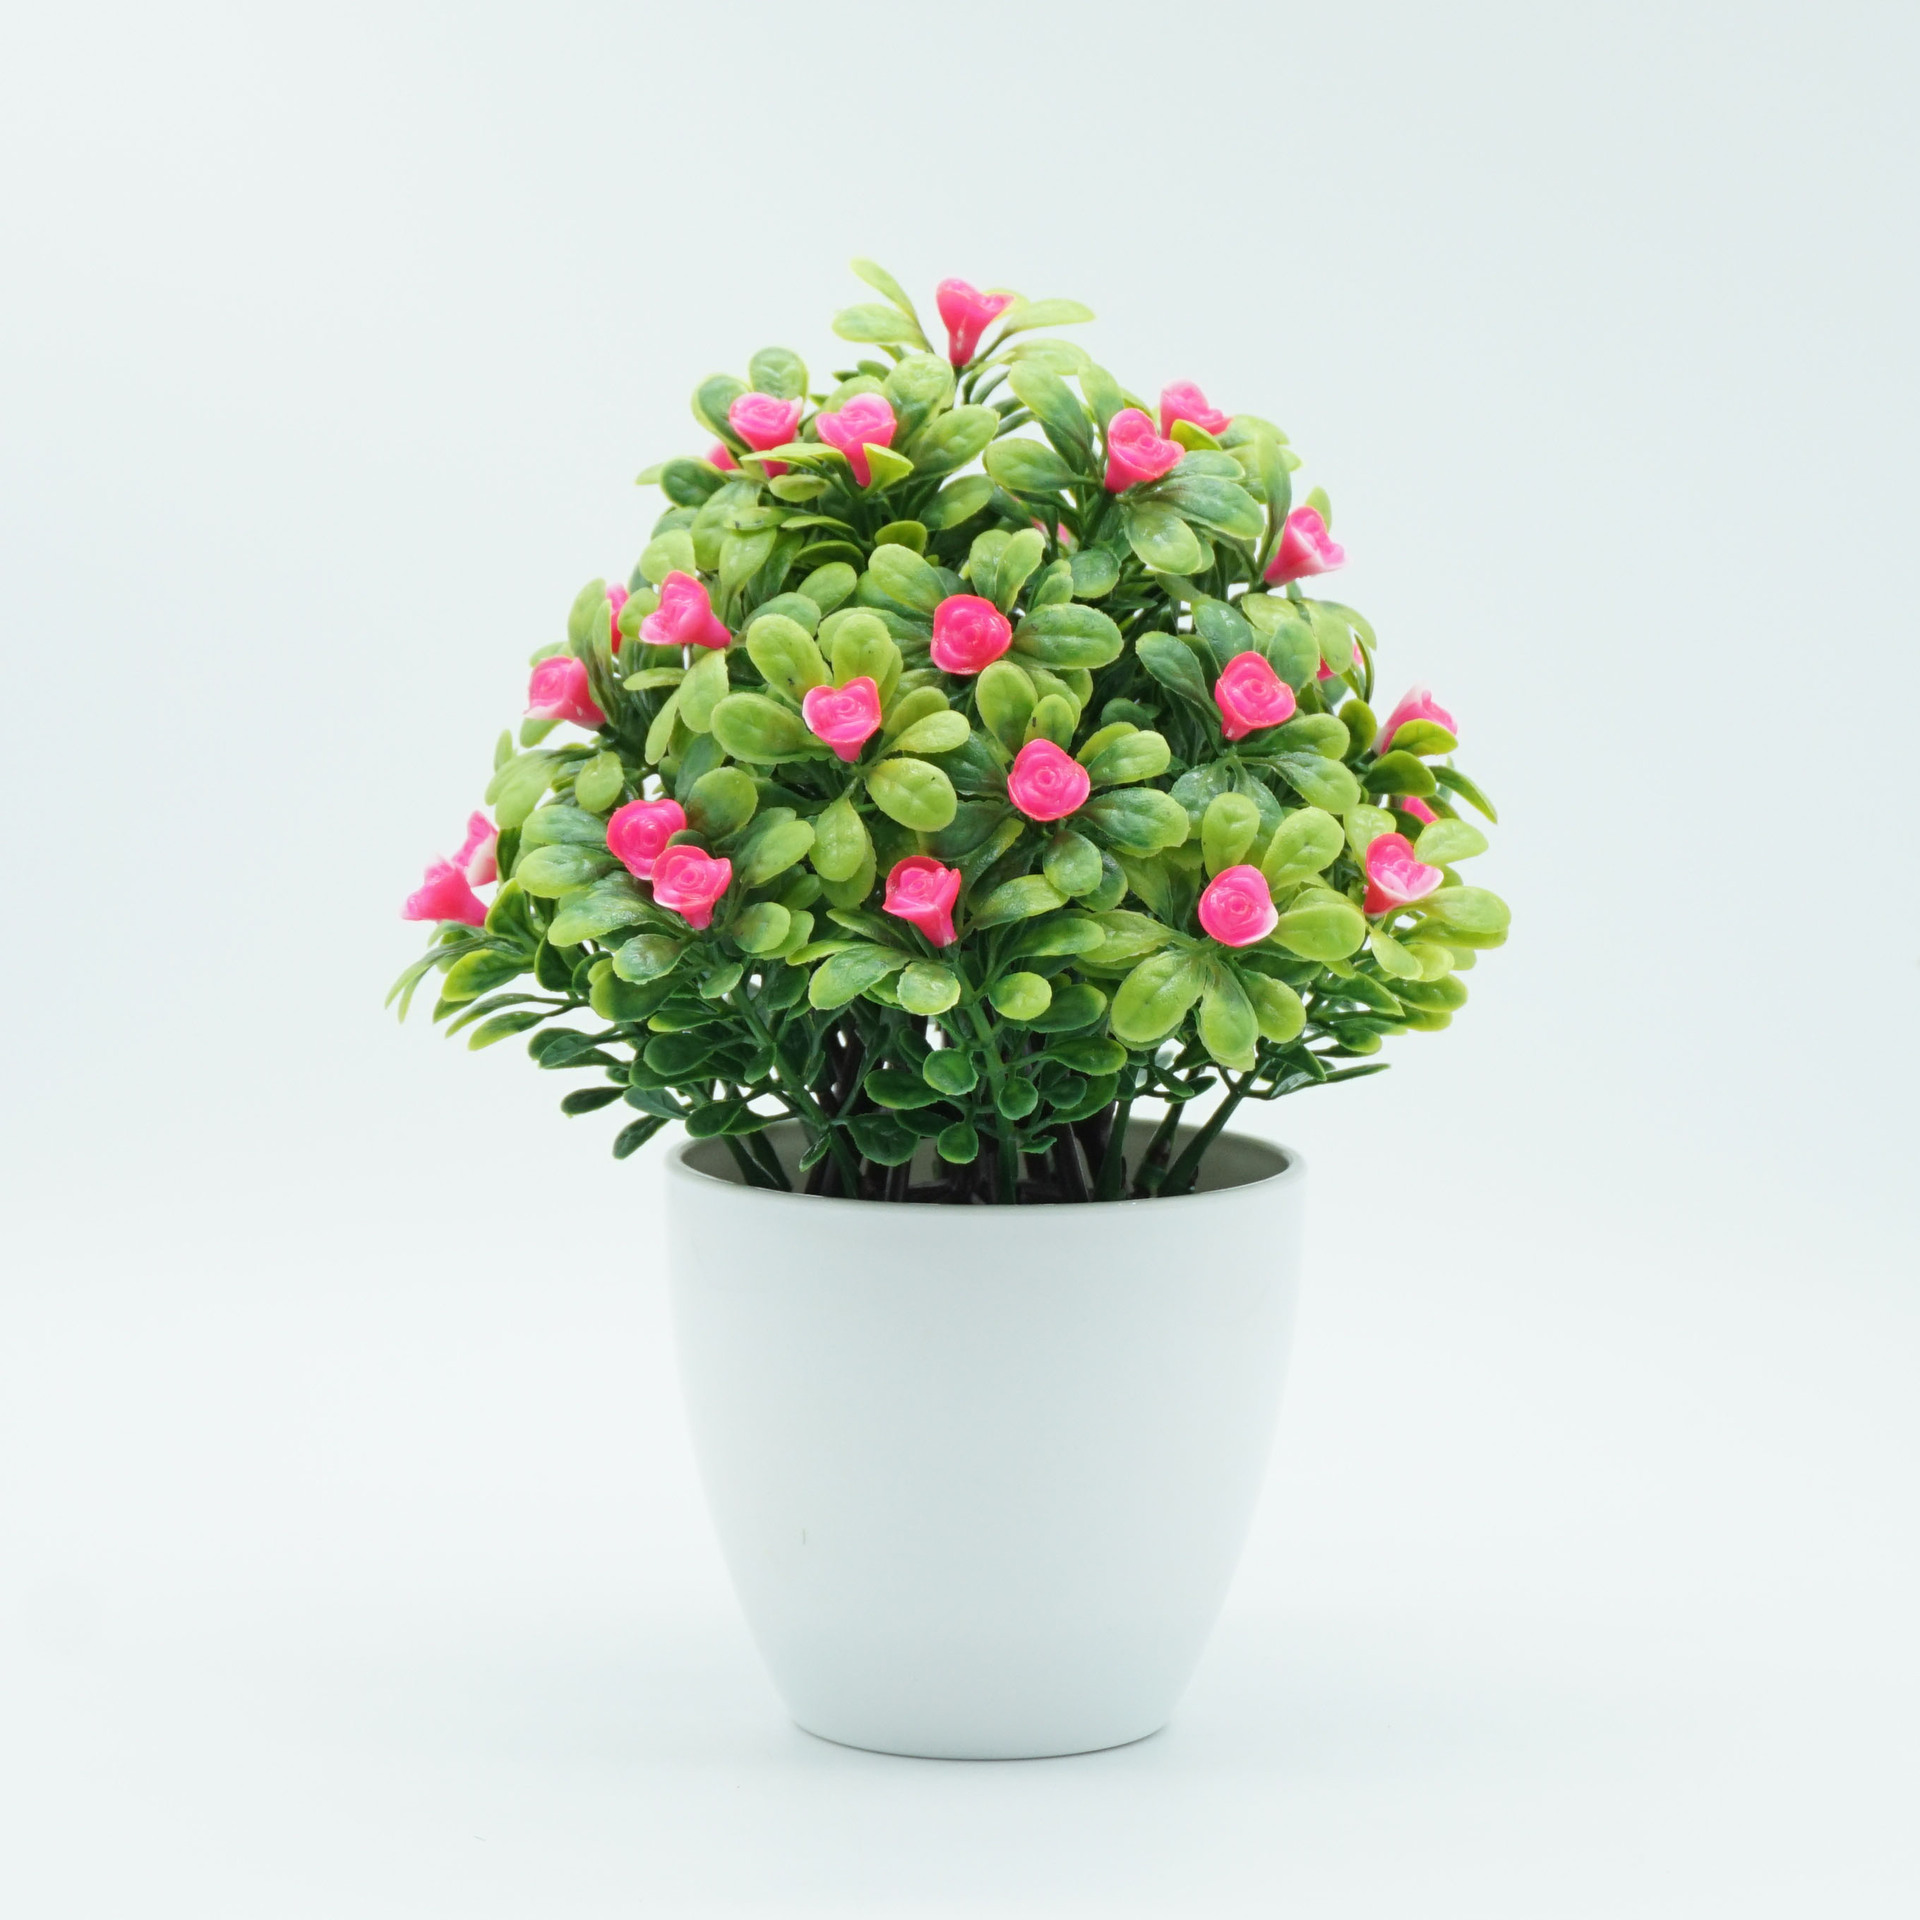 Manufacturers Direct Selling New Style Imitation Flowers Bonsai Plastic Flower Artificial Flower Potted Plant Small Ornaments Li thumbnail